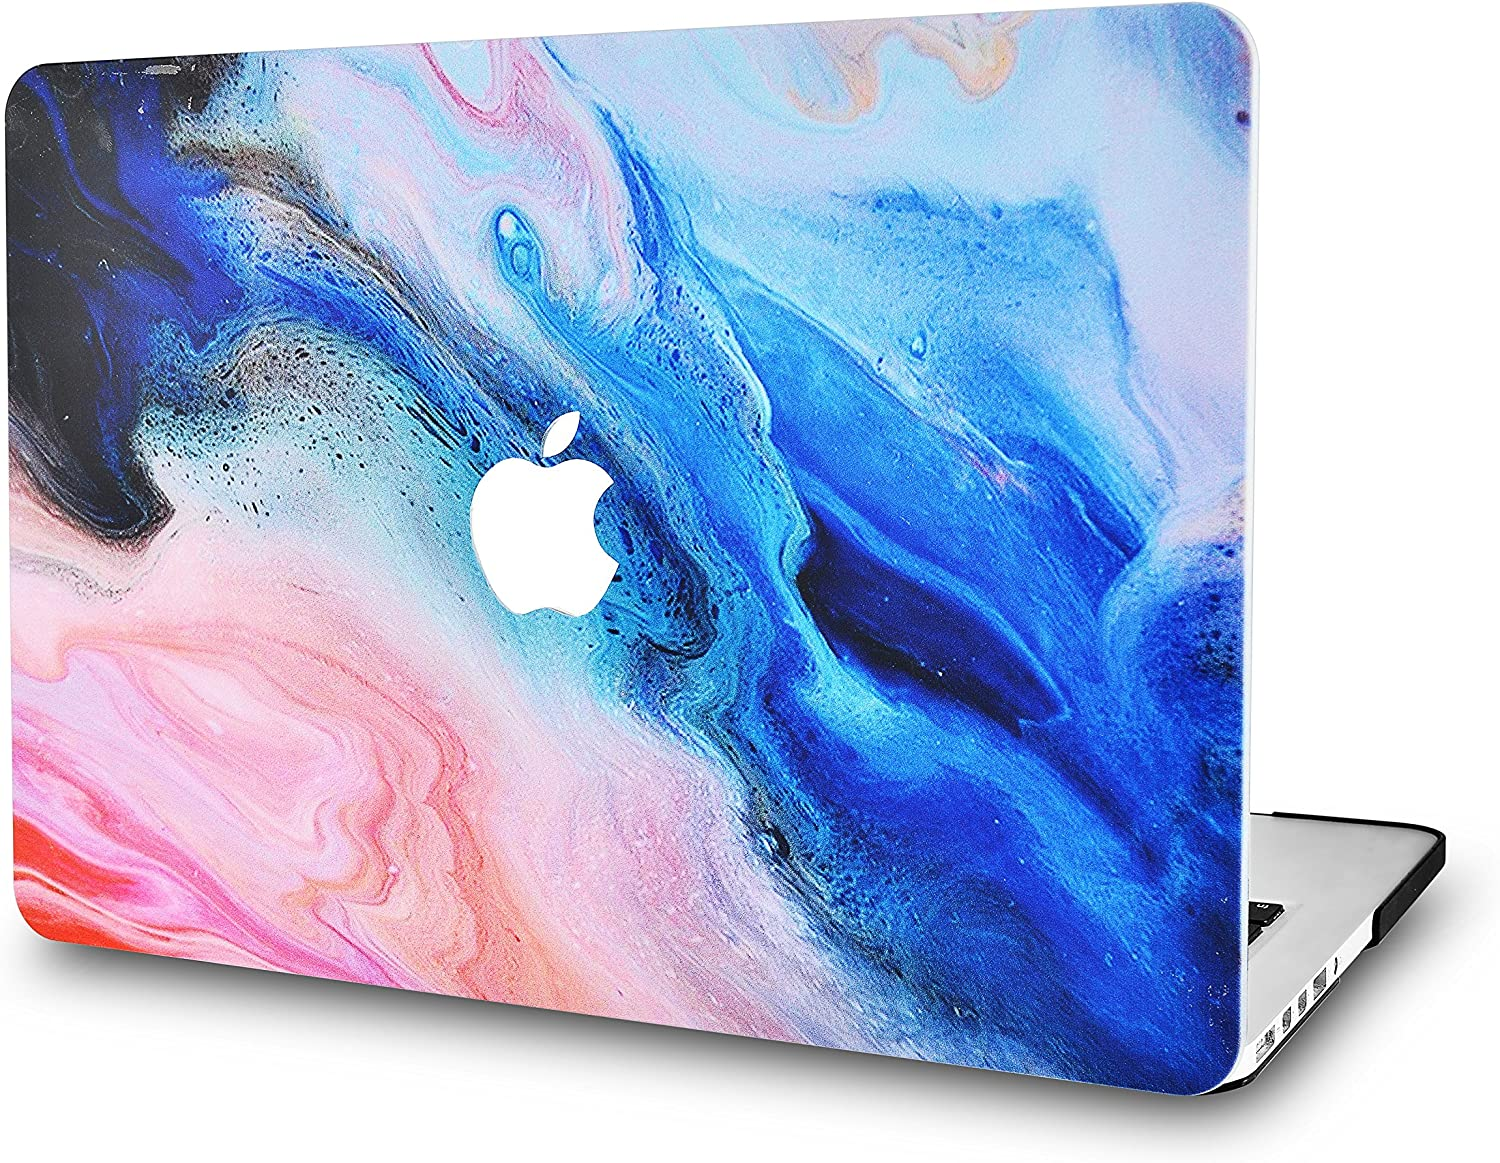 "LuvCase Laptop Case for MacBook Pro 13"" (2020/19/18/17/16 Release) with/Without Touch Bar A2251/A2289/A2159/A1989/A1706/A1708 Rubberized Plastic Hard Shell Cover (Oil Paint 4)"